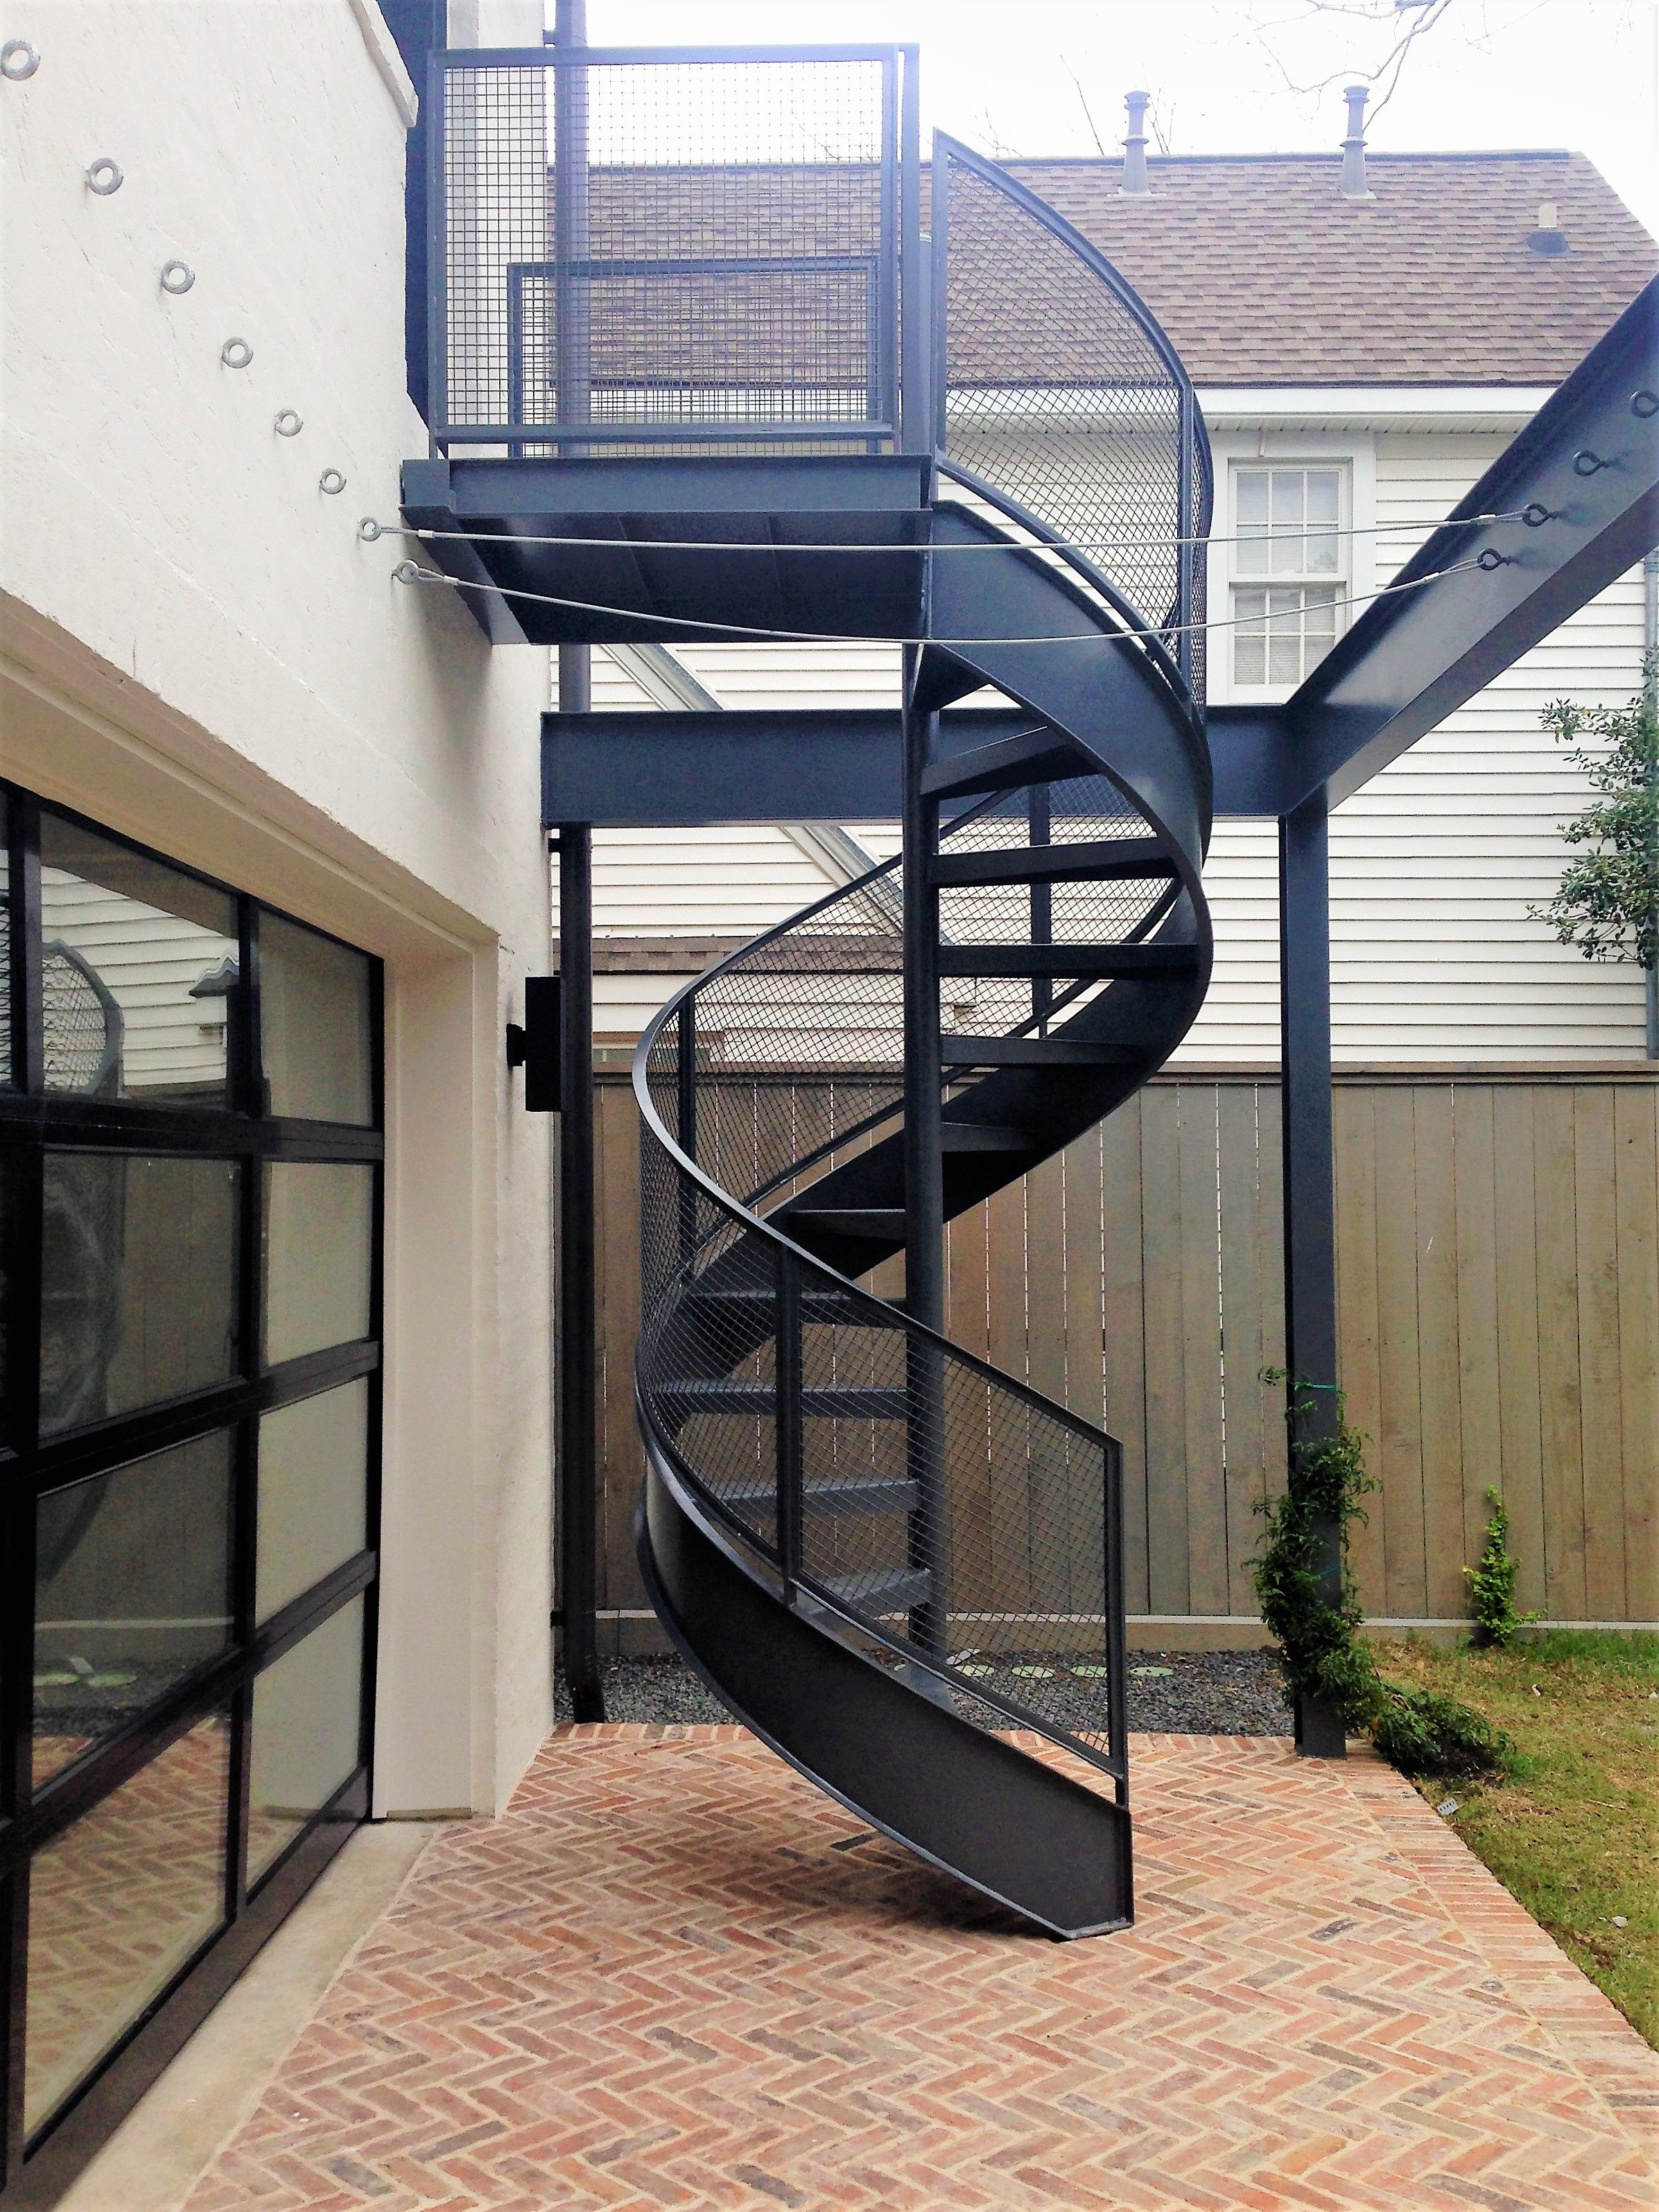 This Is An All Steel Code Compliant Spiral Stair Has A Flat Bar